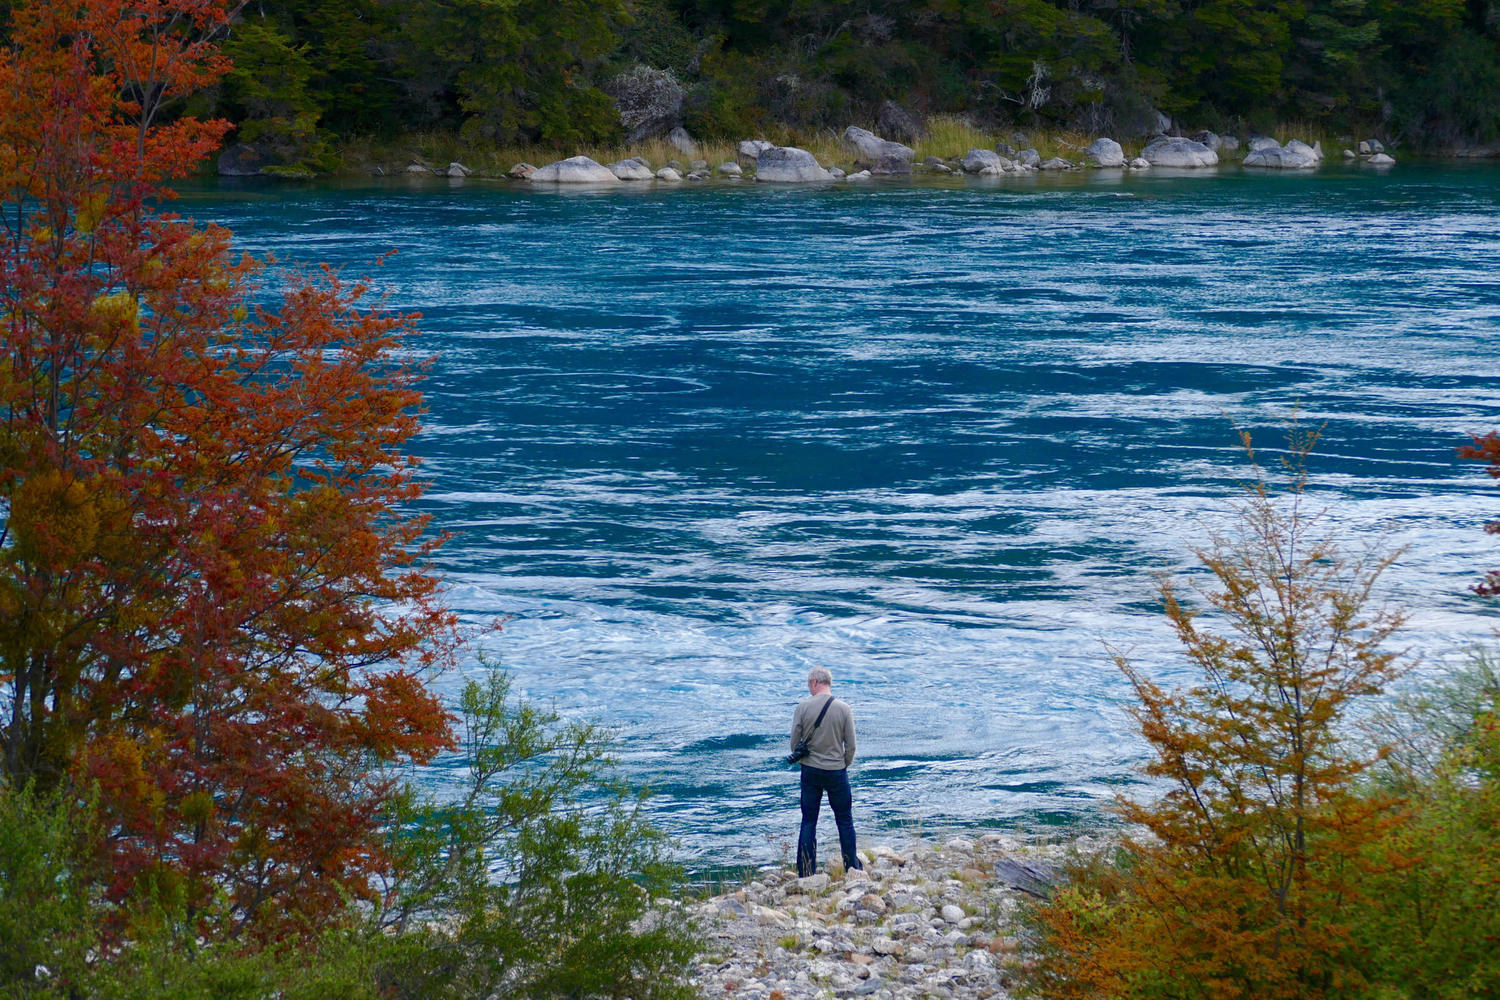 The vibrant blue waters of the Rio Baker in Chilean Patagonia